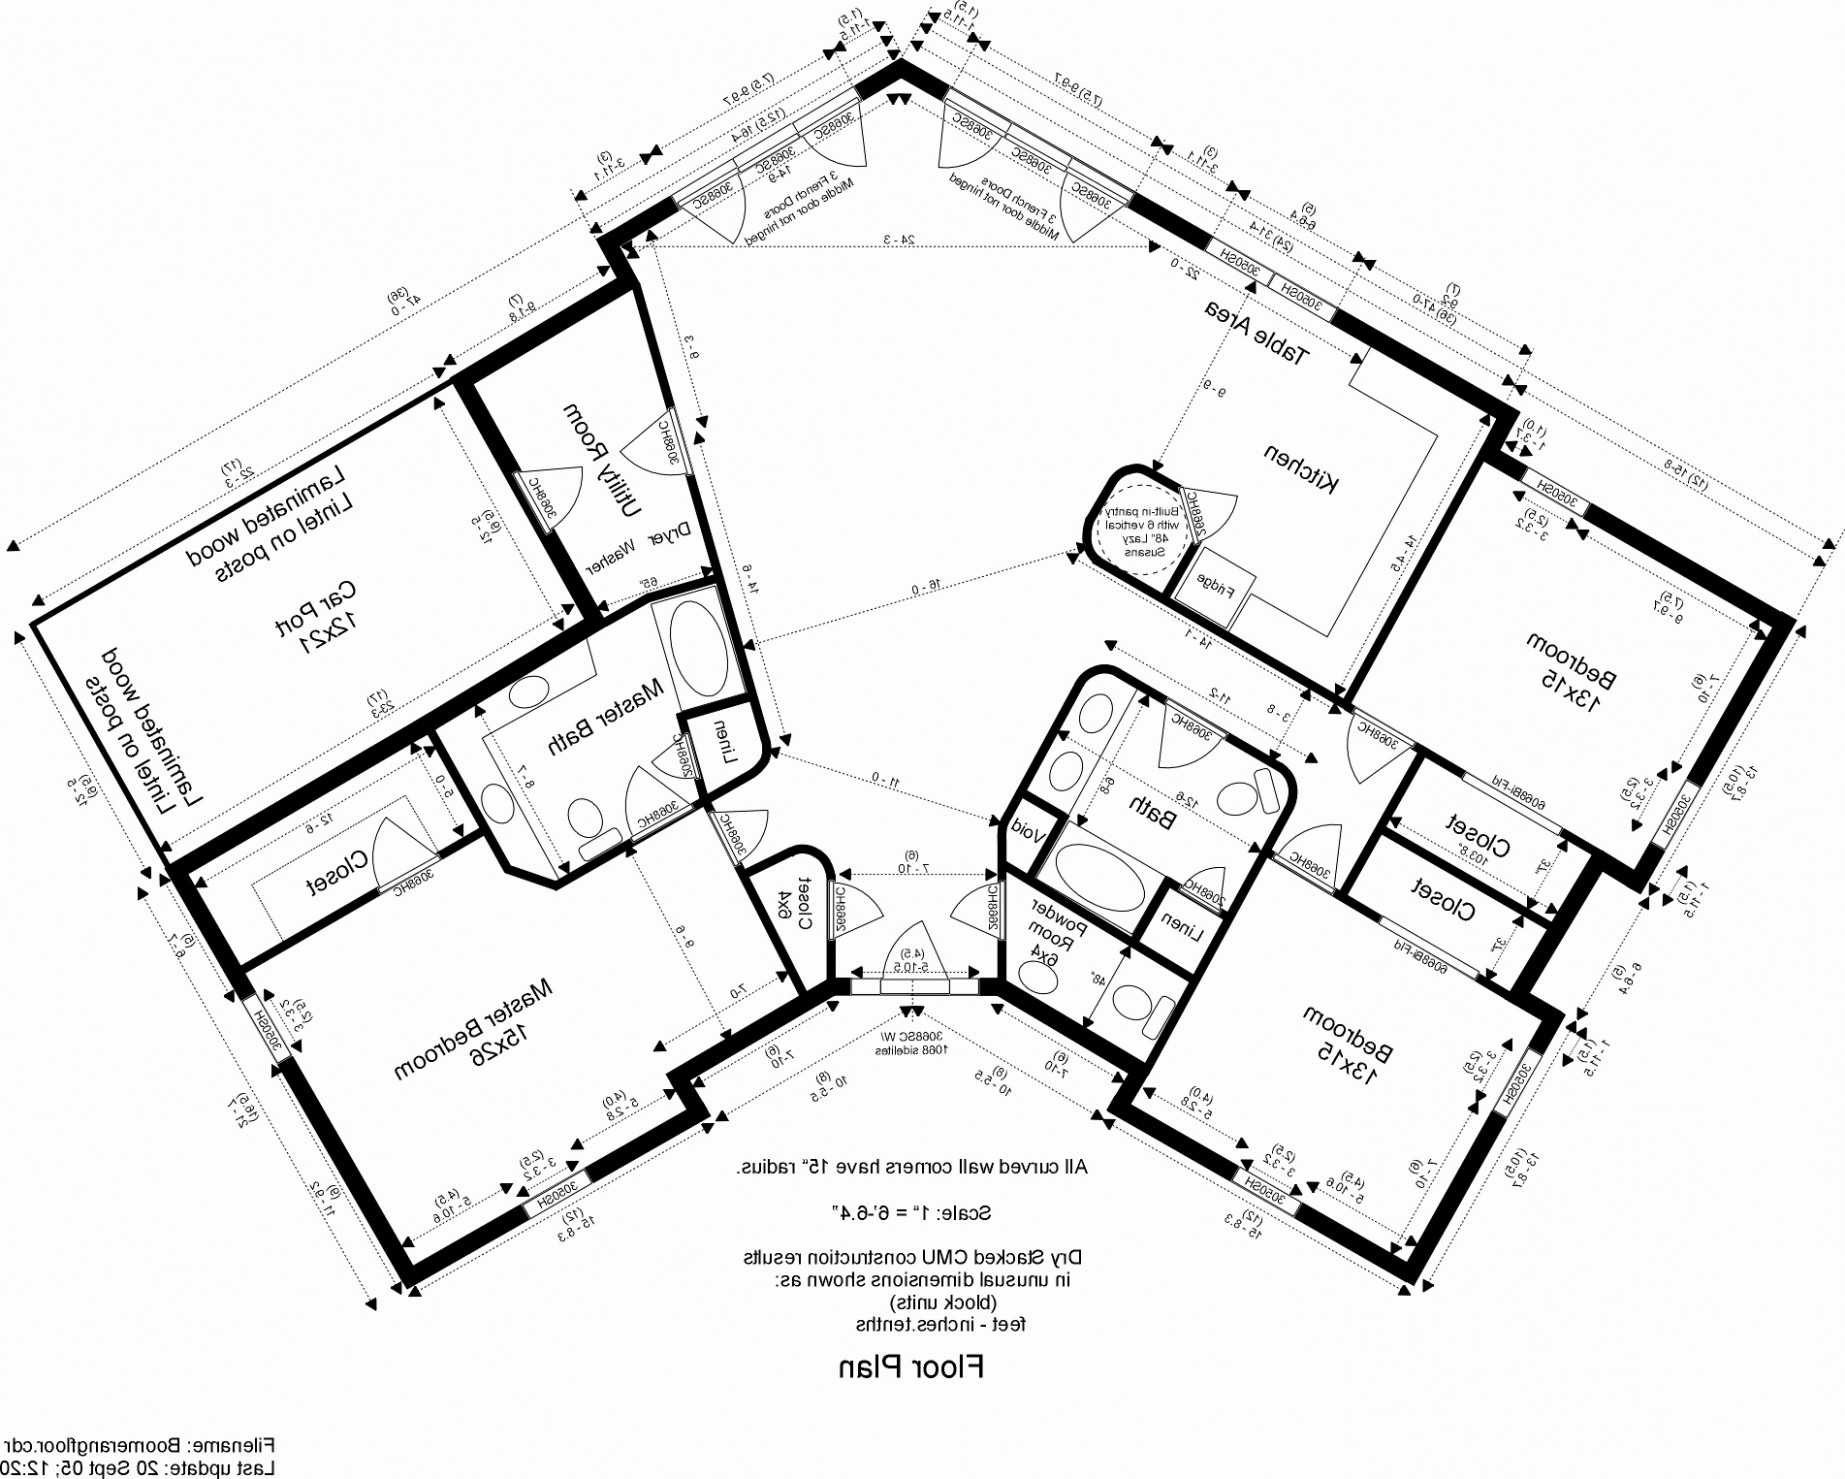 Building a house drawing at free for for Blueprints drawing apps